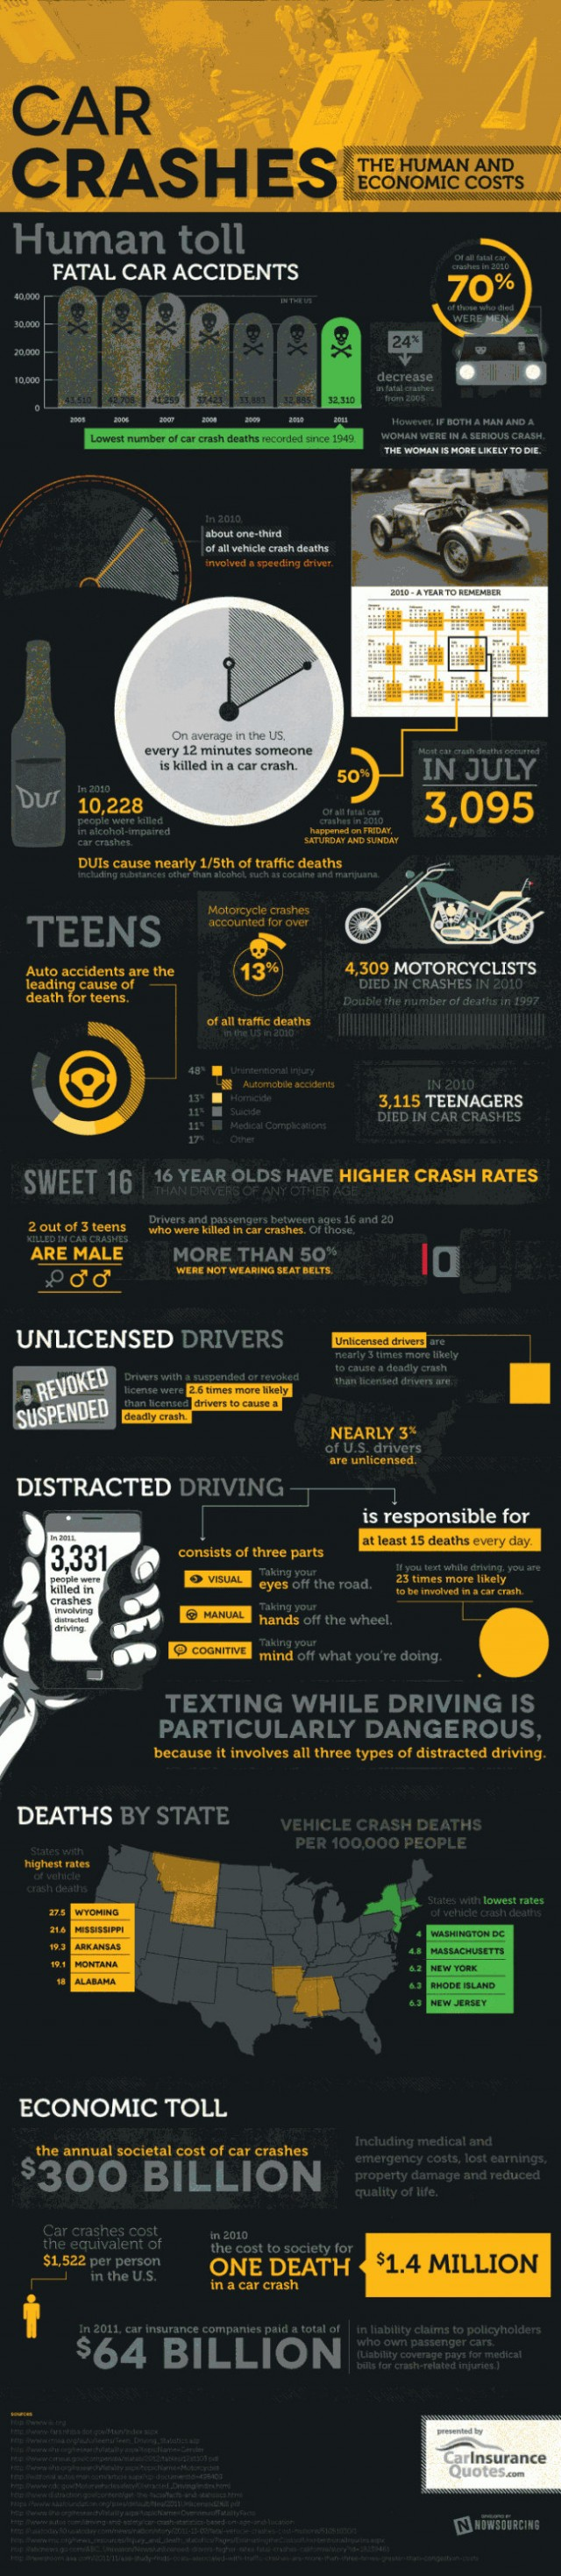 The Cost of Car Crashes